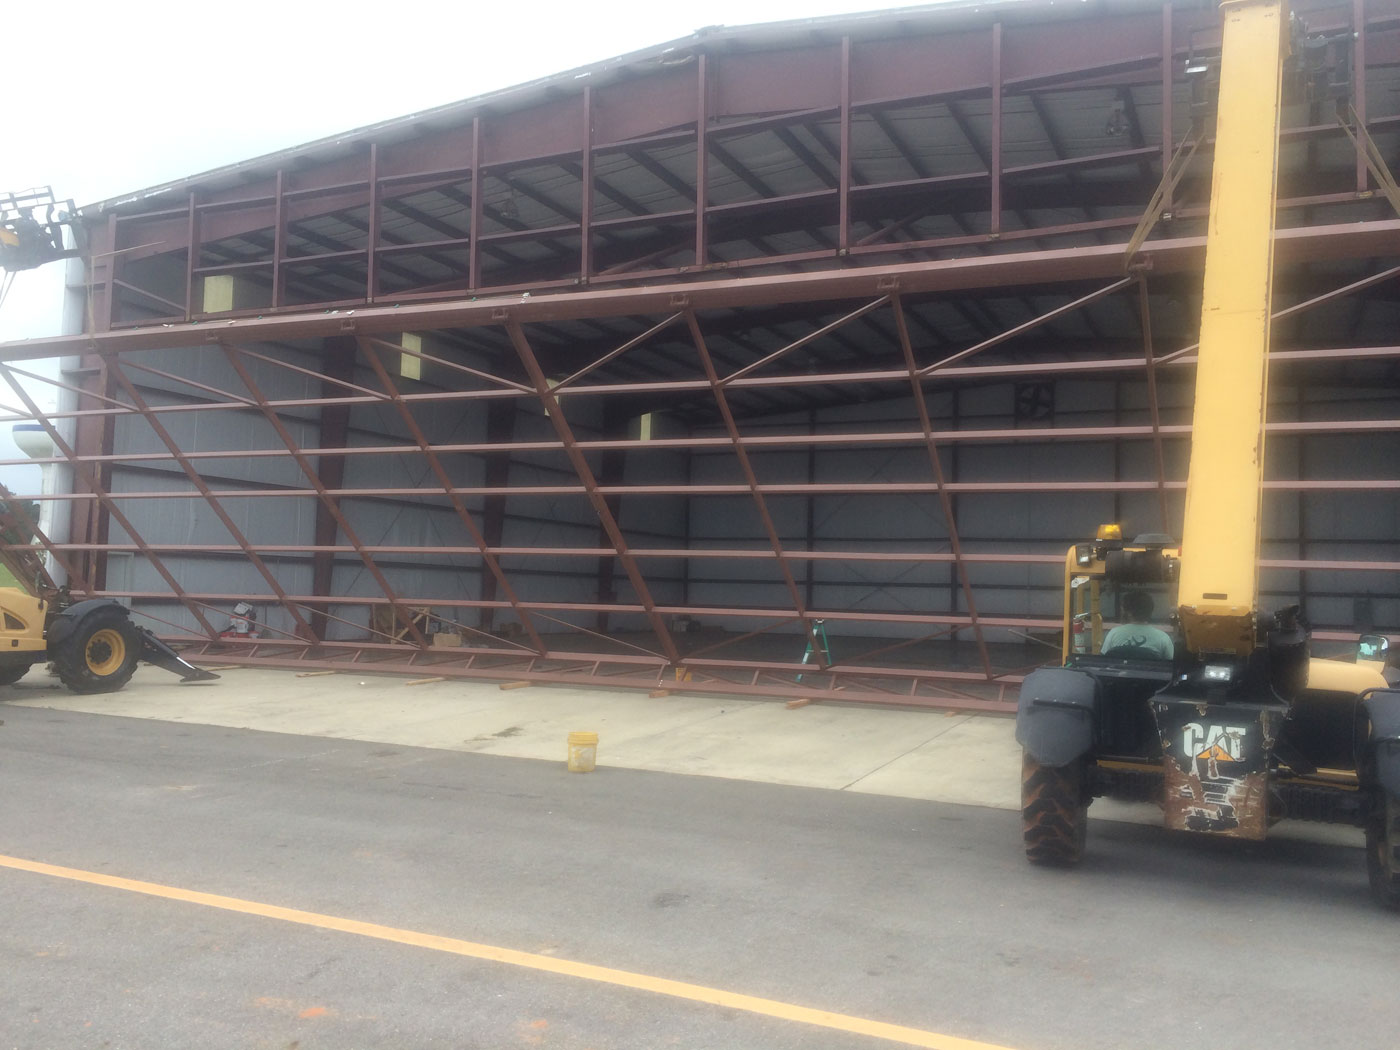 hydraulic hangar door install how to